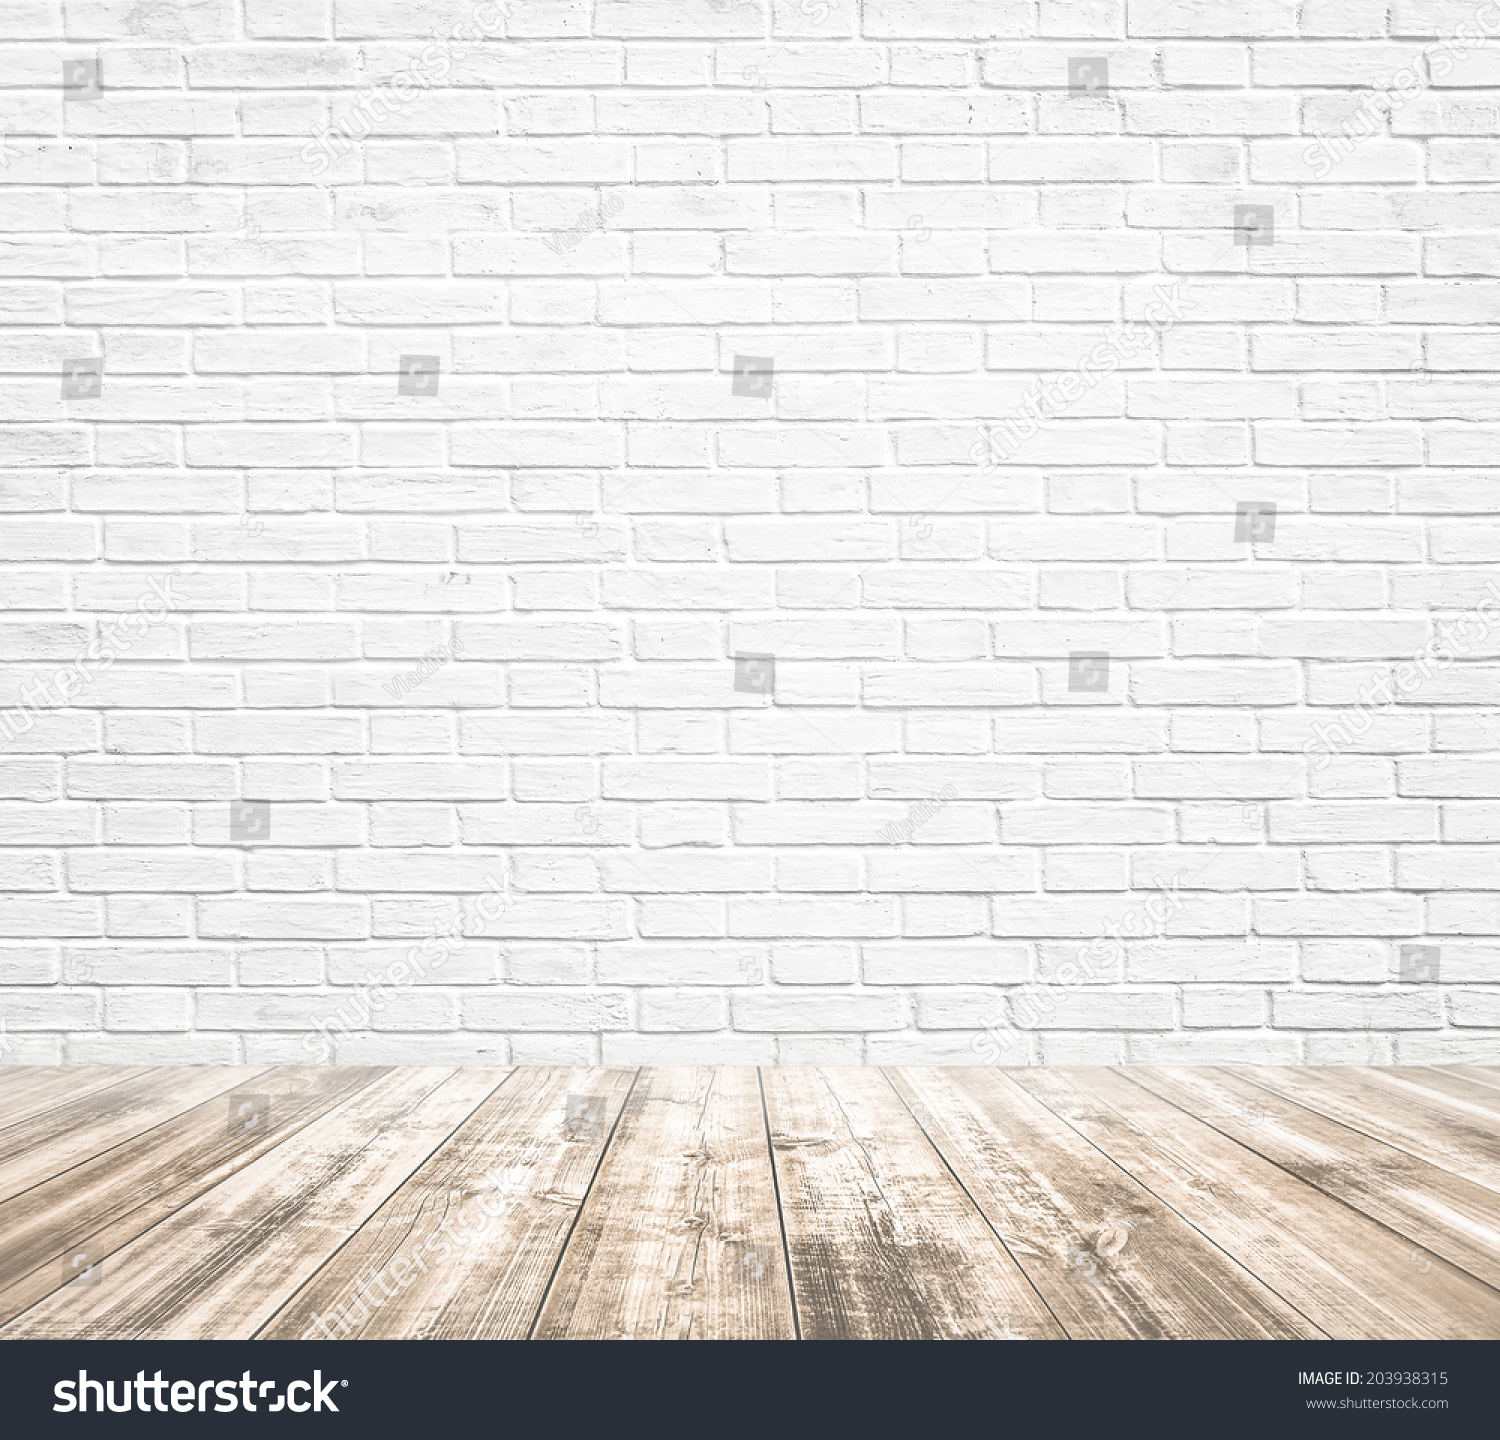 background of age grungy texture white brick and stone wall with light